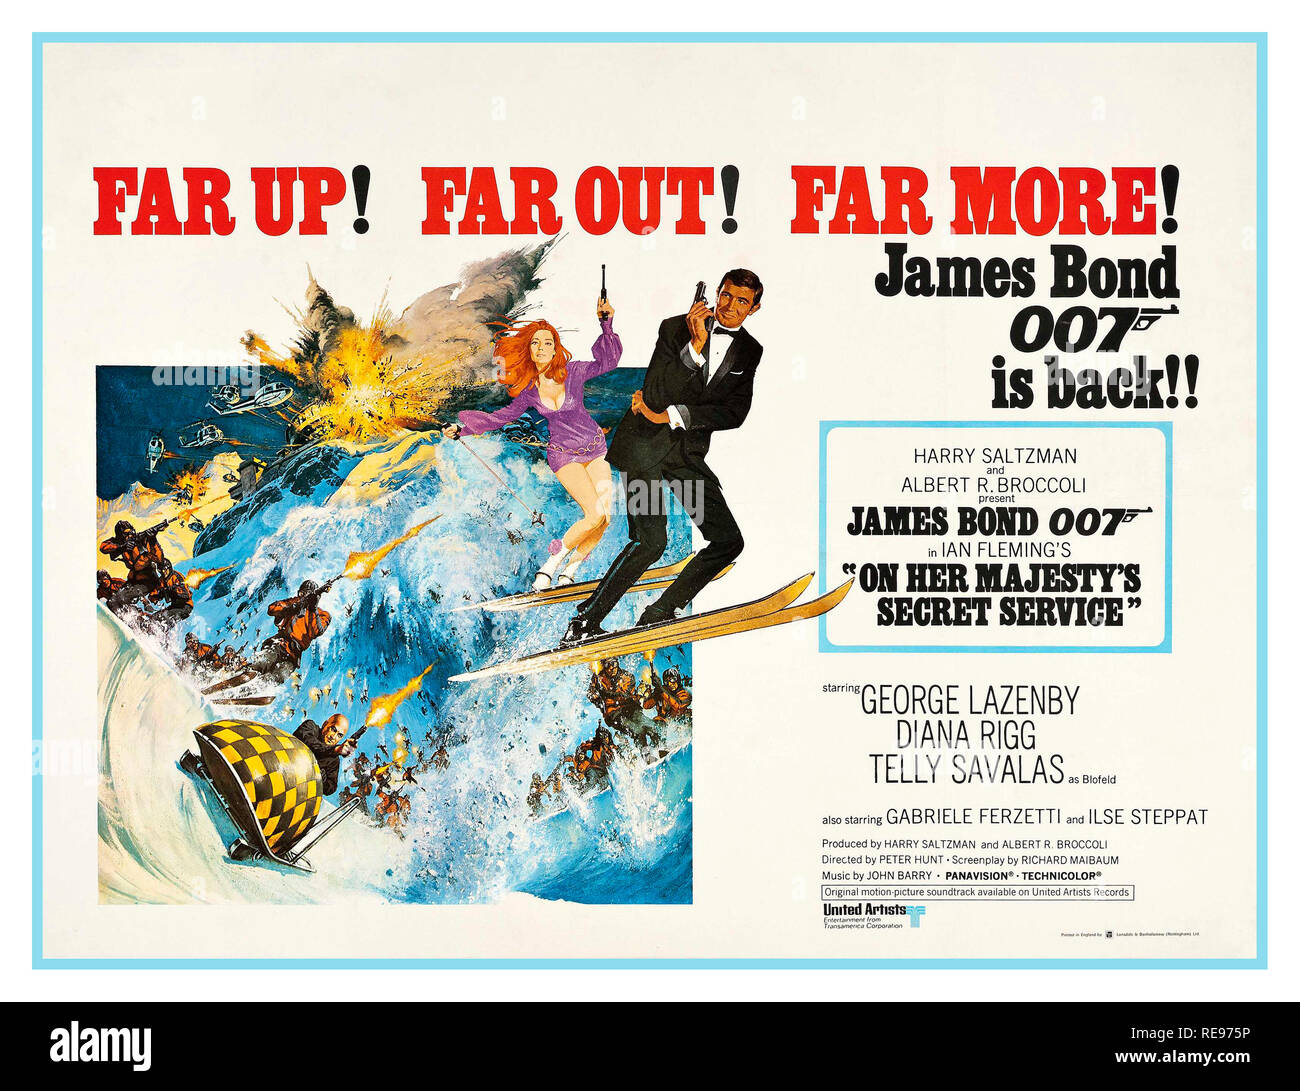 Vintage Movie Poster 1969 James Bond 007 GEORGE LAZENBY On Her Majesty's Secret Service is a 1969 British spy film and the sixth in the James Bond series produced by Eon Productions. It is based on the 1963 novel of the same name by Ian Fleming. Following Sean Connery's decision to retire from the role after You Only Live Twice, Eon Productions selected an unknown actor and model, George Lazenby, to play the part of James Bond. During the making of the film, Lazenby announced that he would play the role of Bond only once. - Stock Image